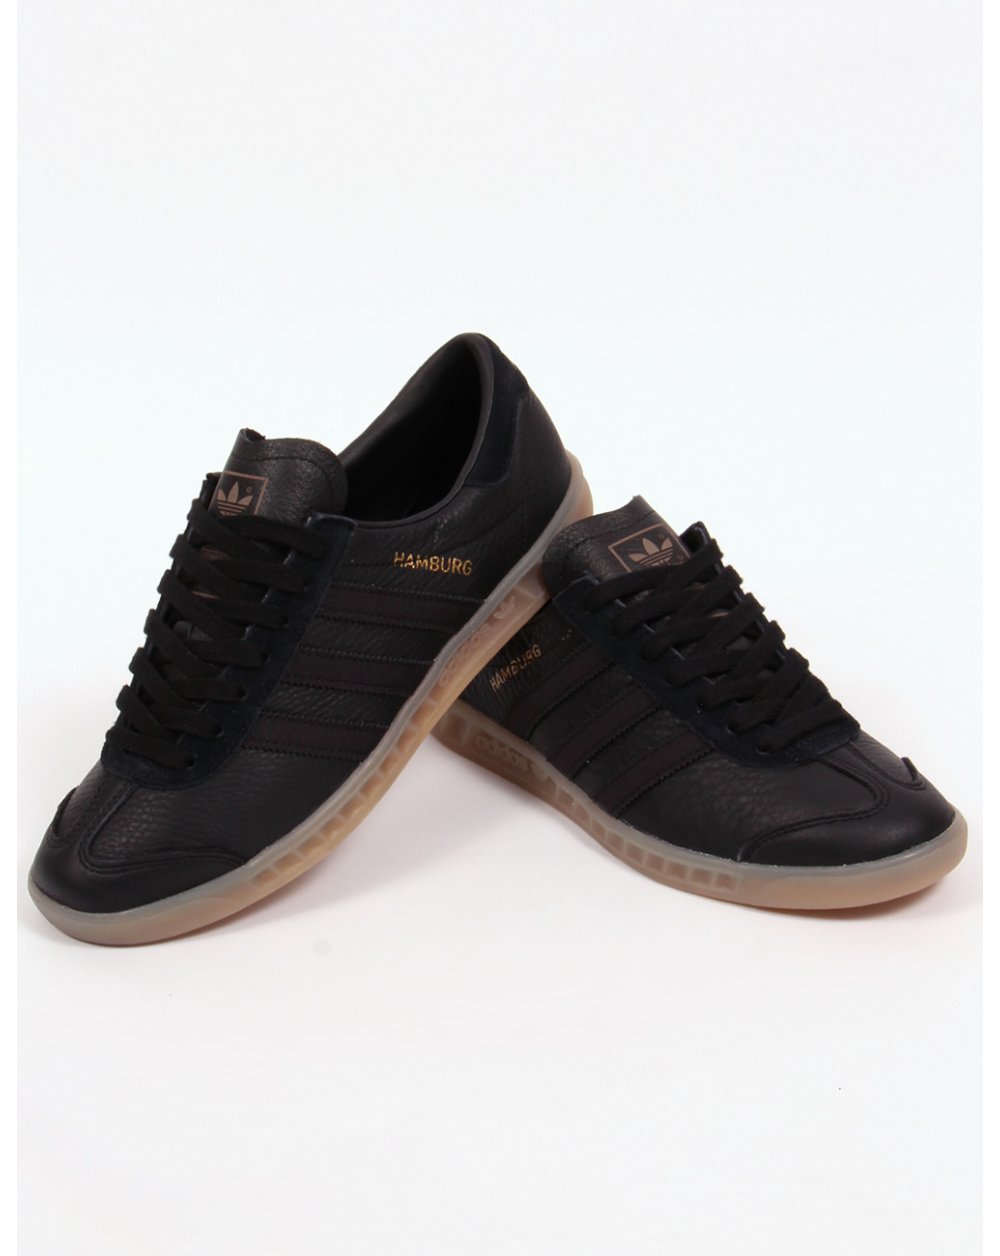 adidas hamburgs black leather